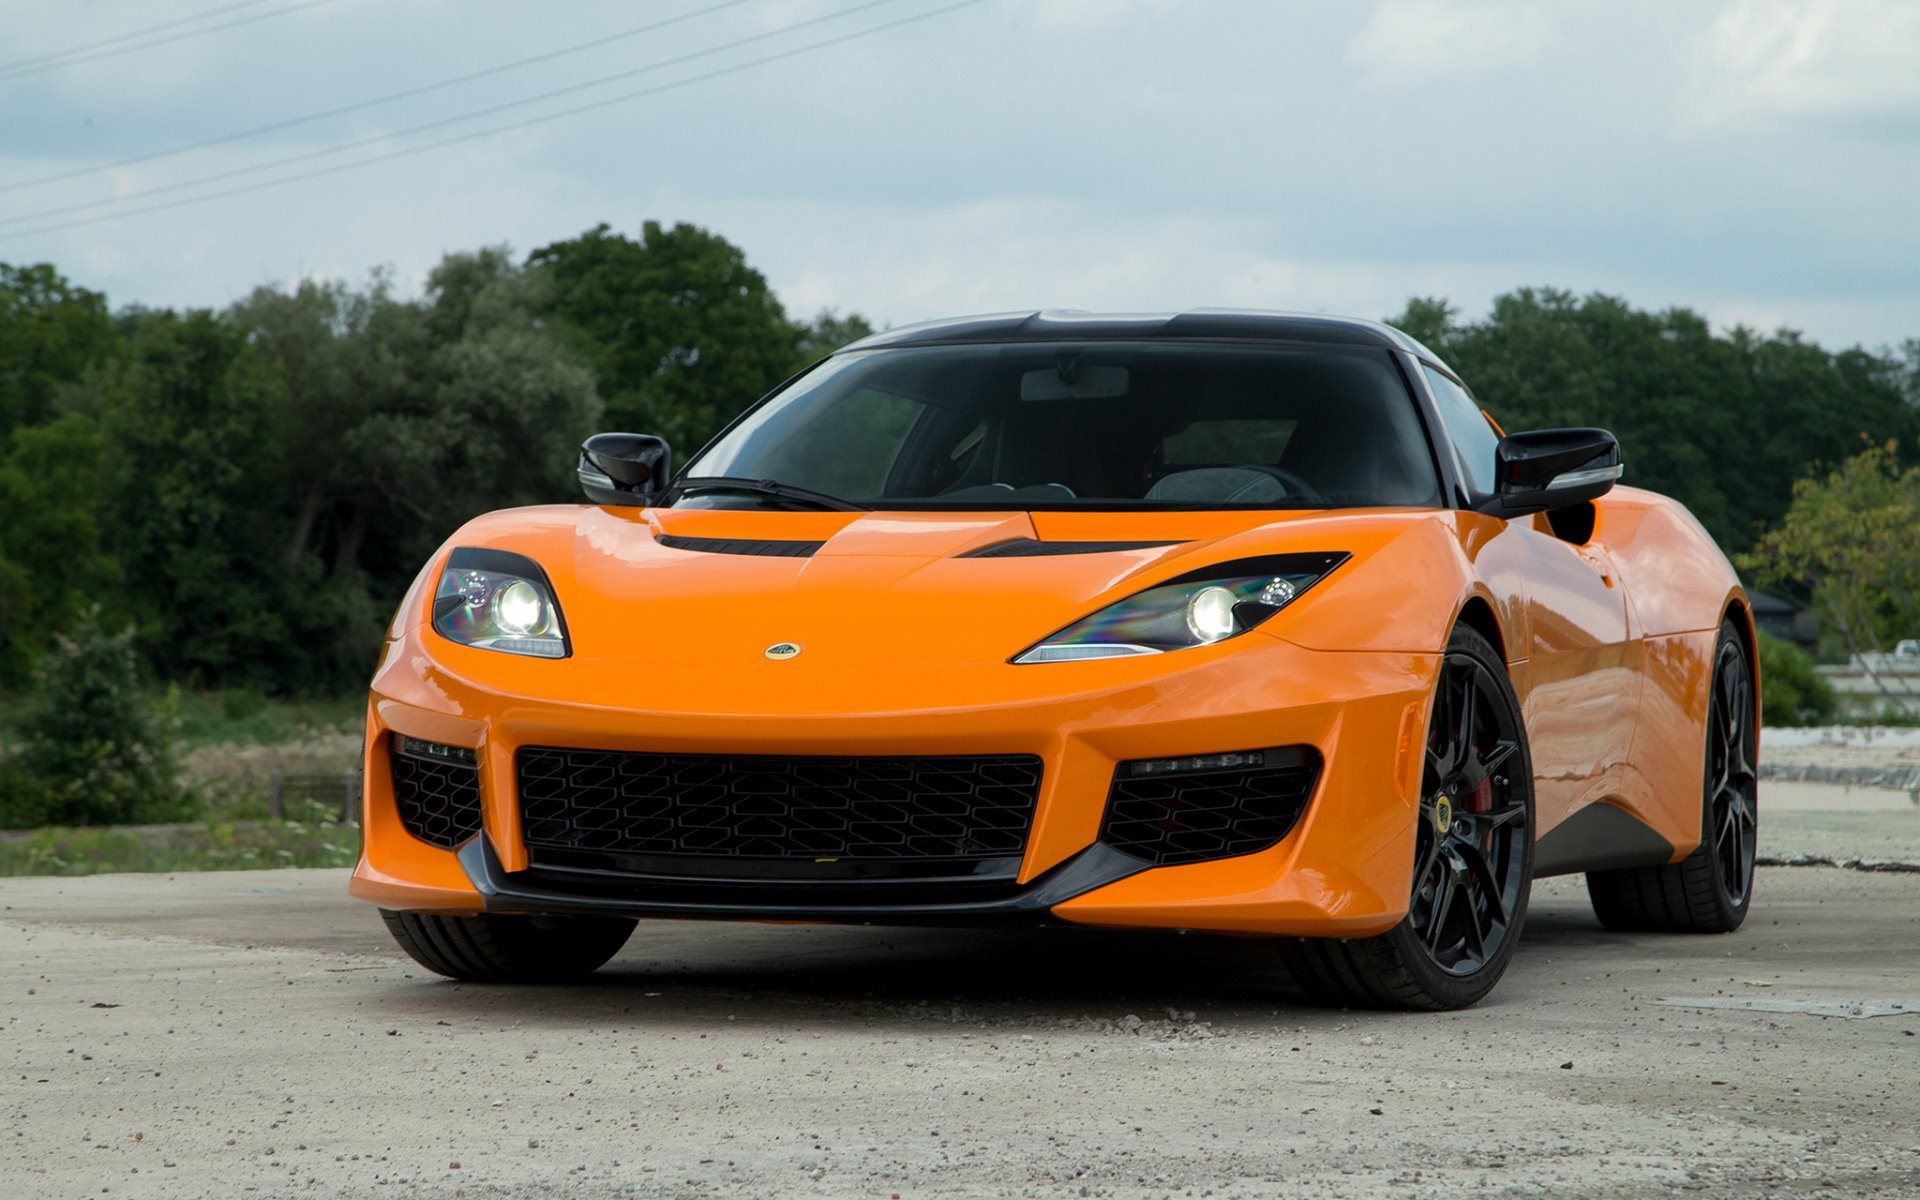 2017 lotus evora 400 wallpaper